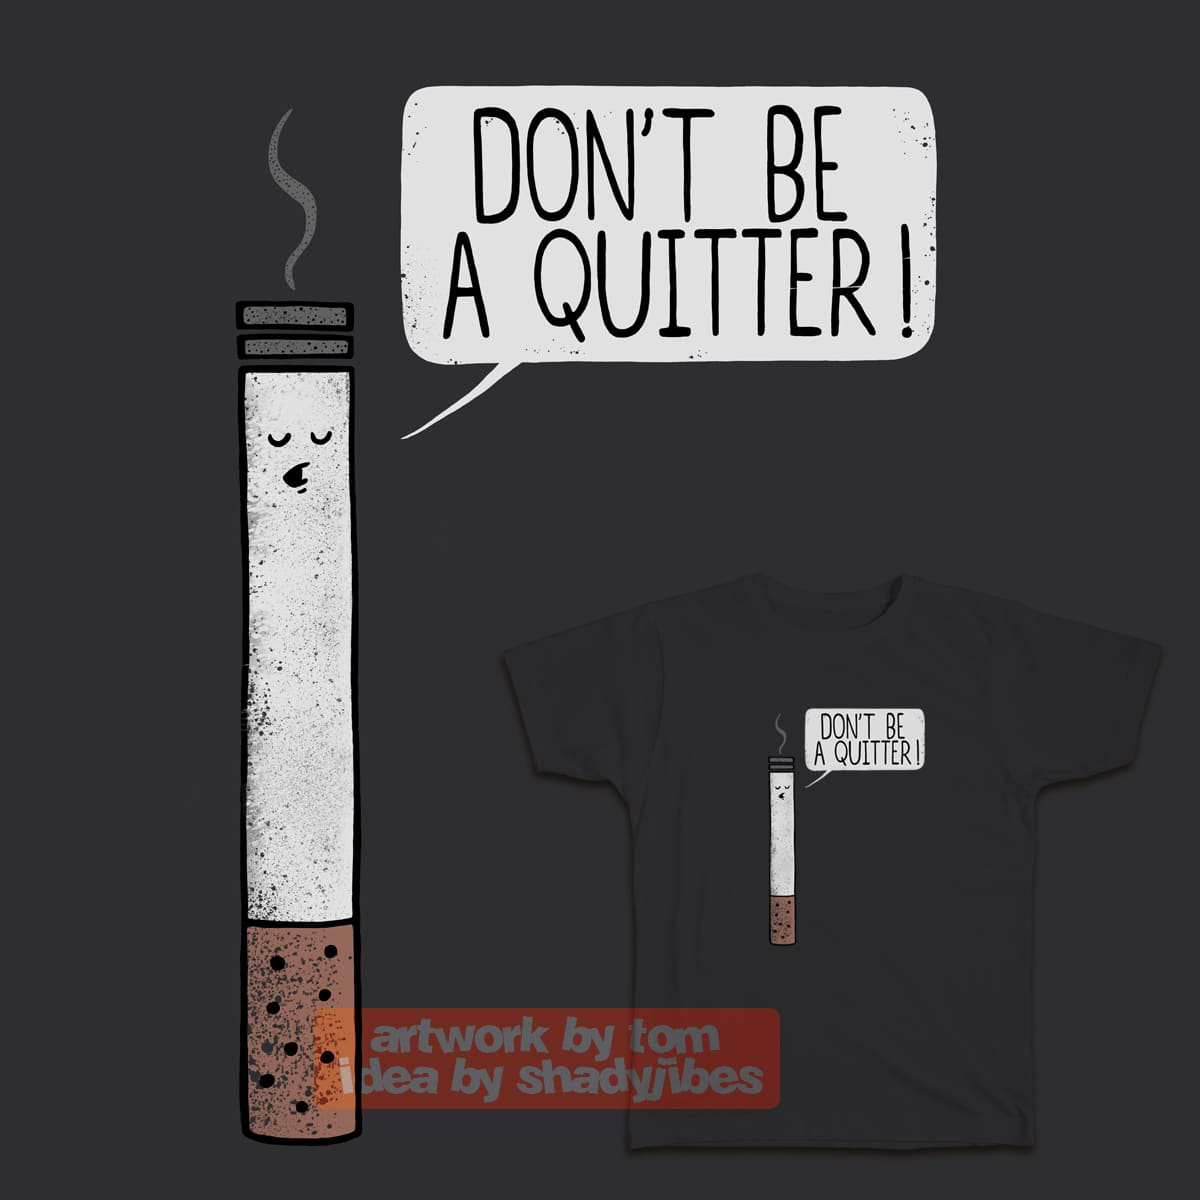 never give up by Thomas Orrow and Shadyjibes on Threadless